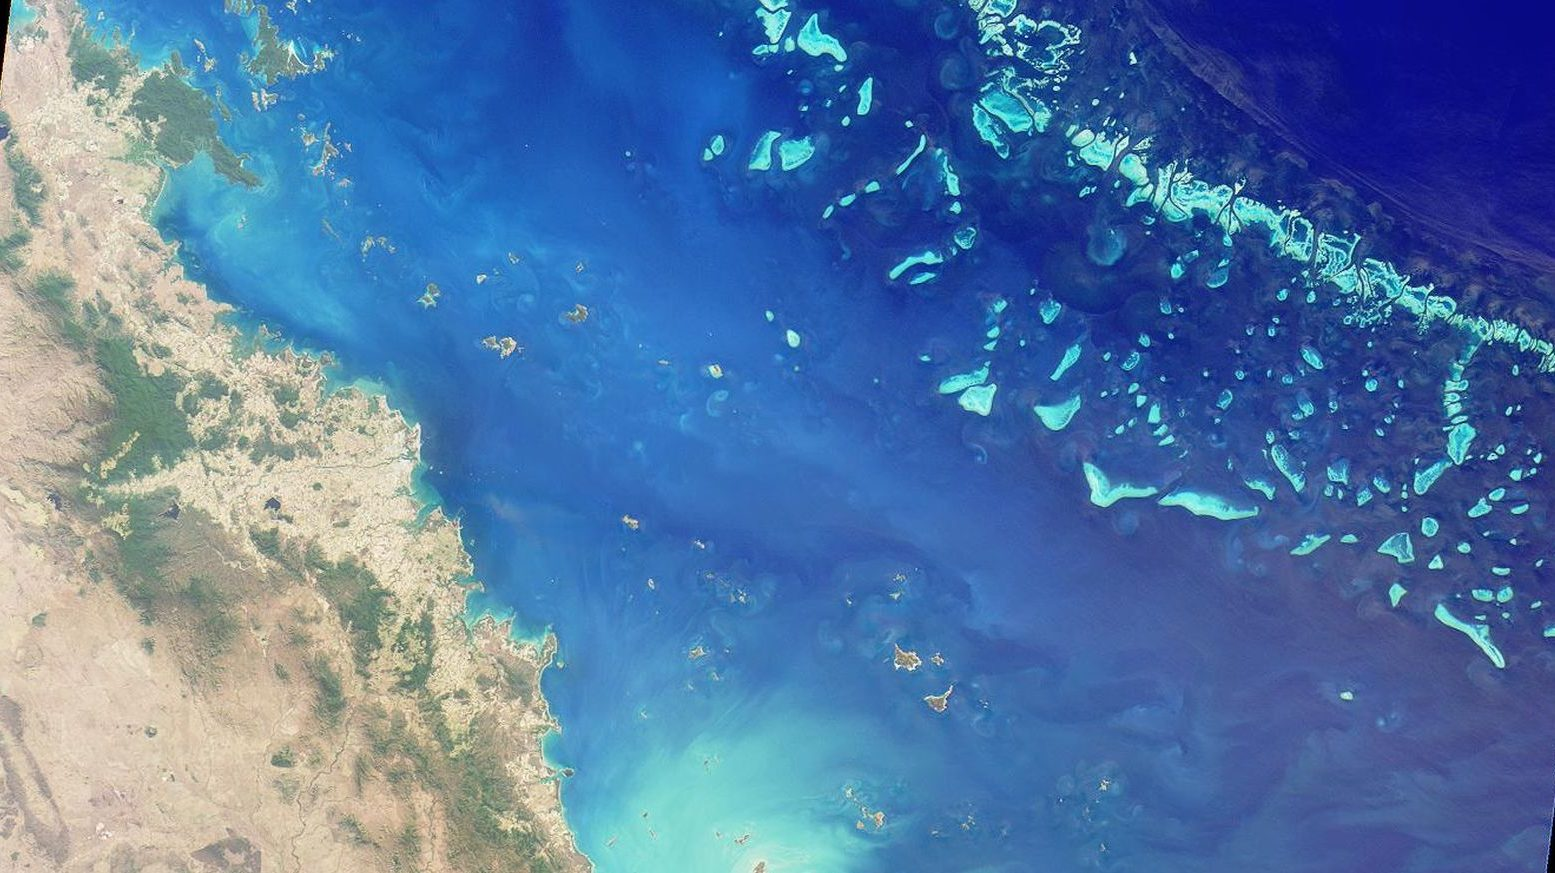 This is likely the last generation to see the Great Barrier Reef as humans have known it